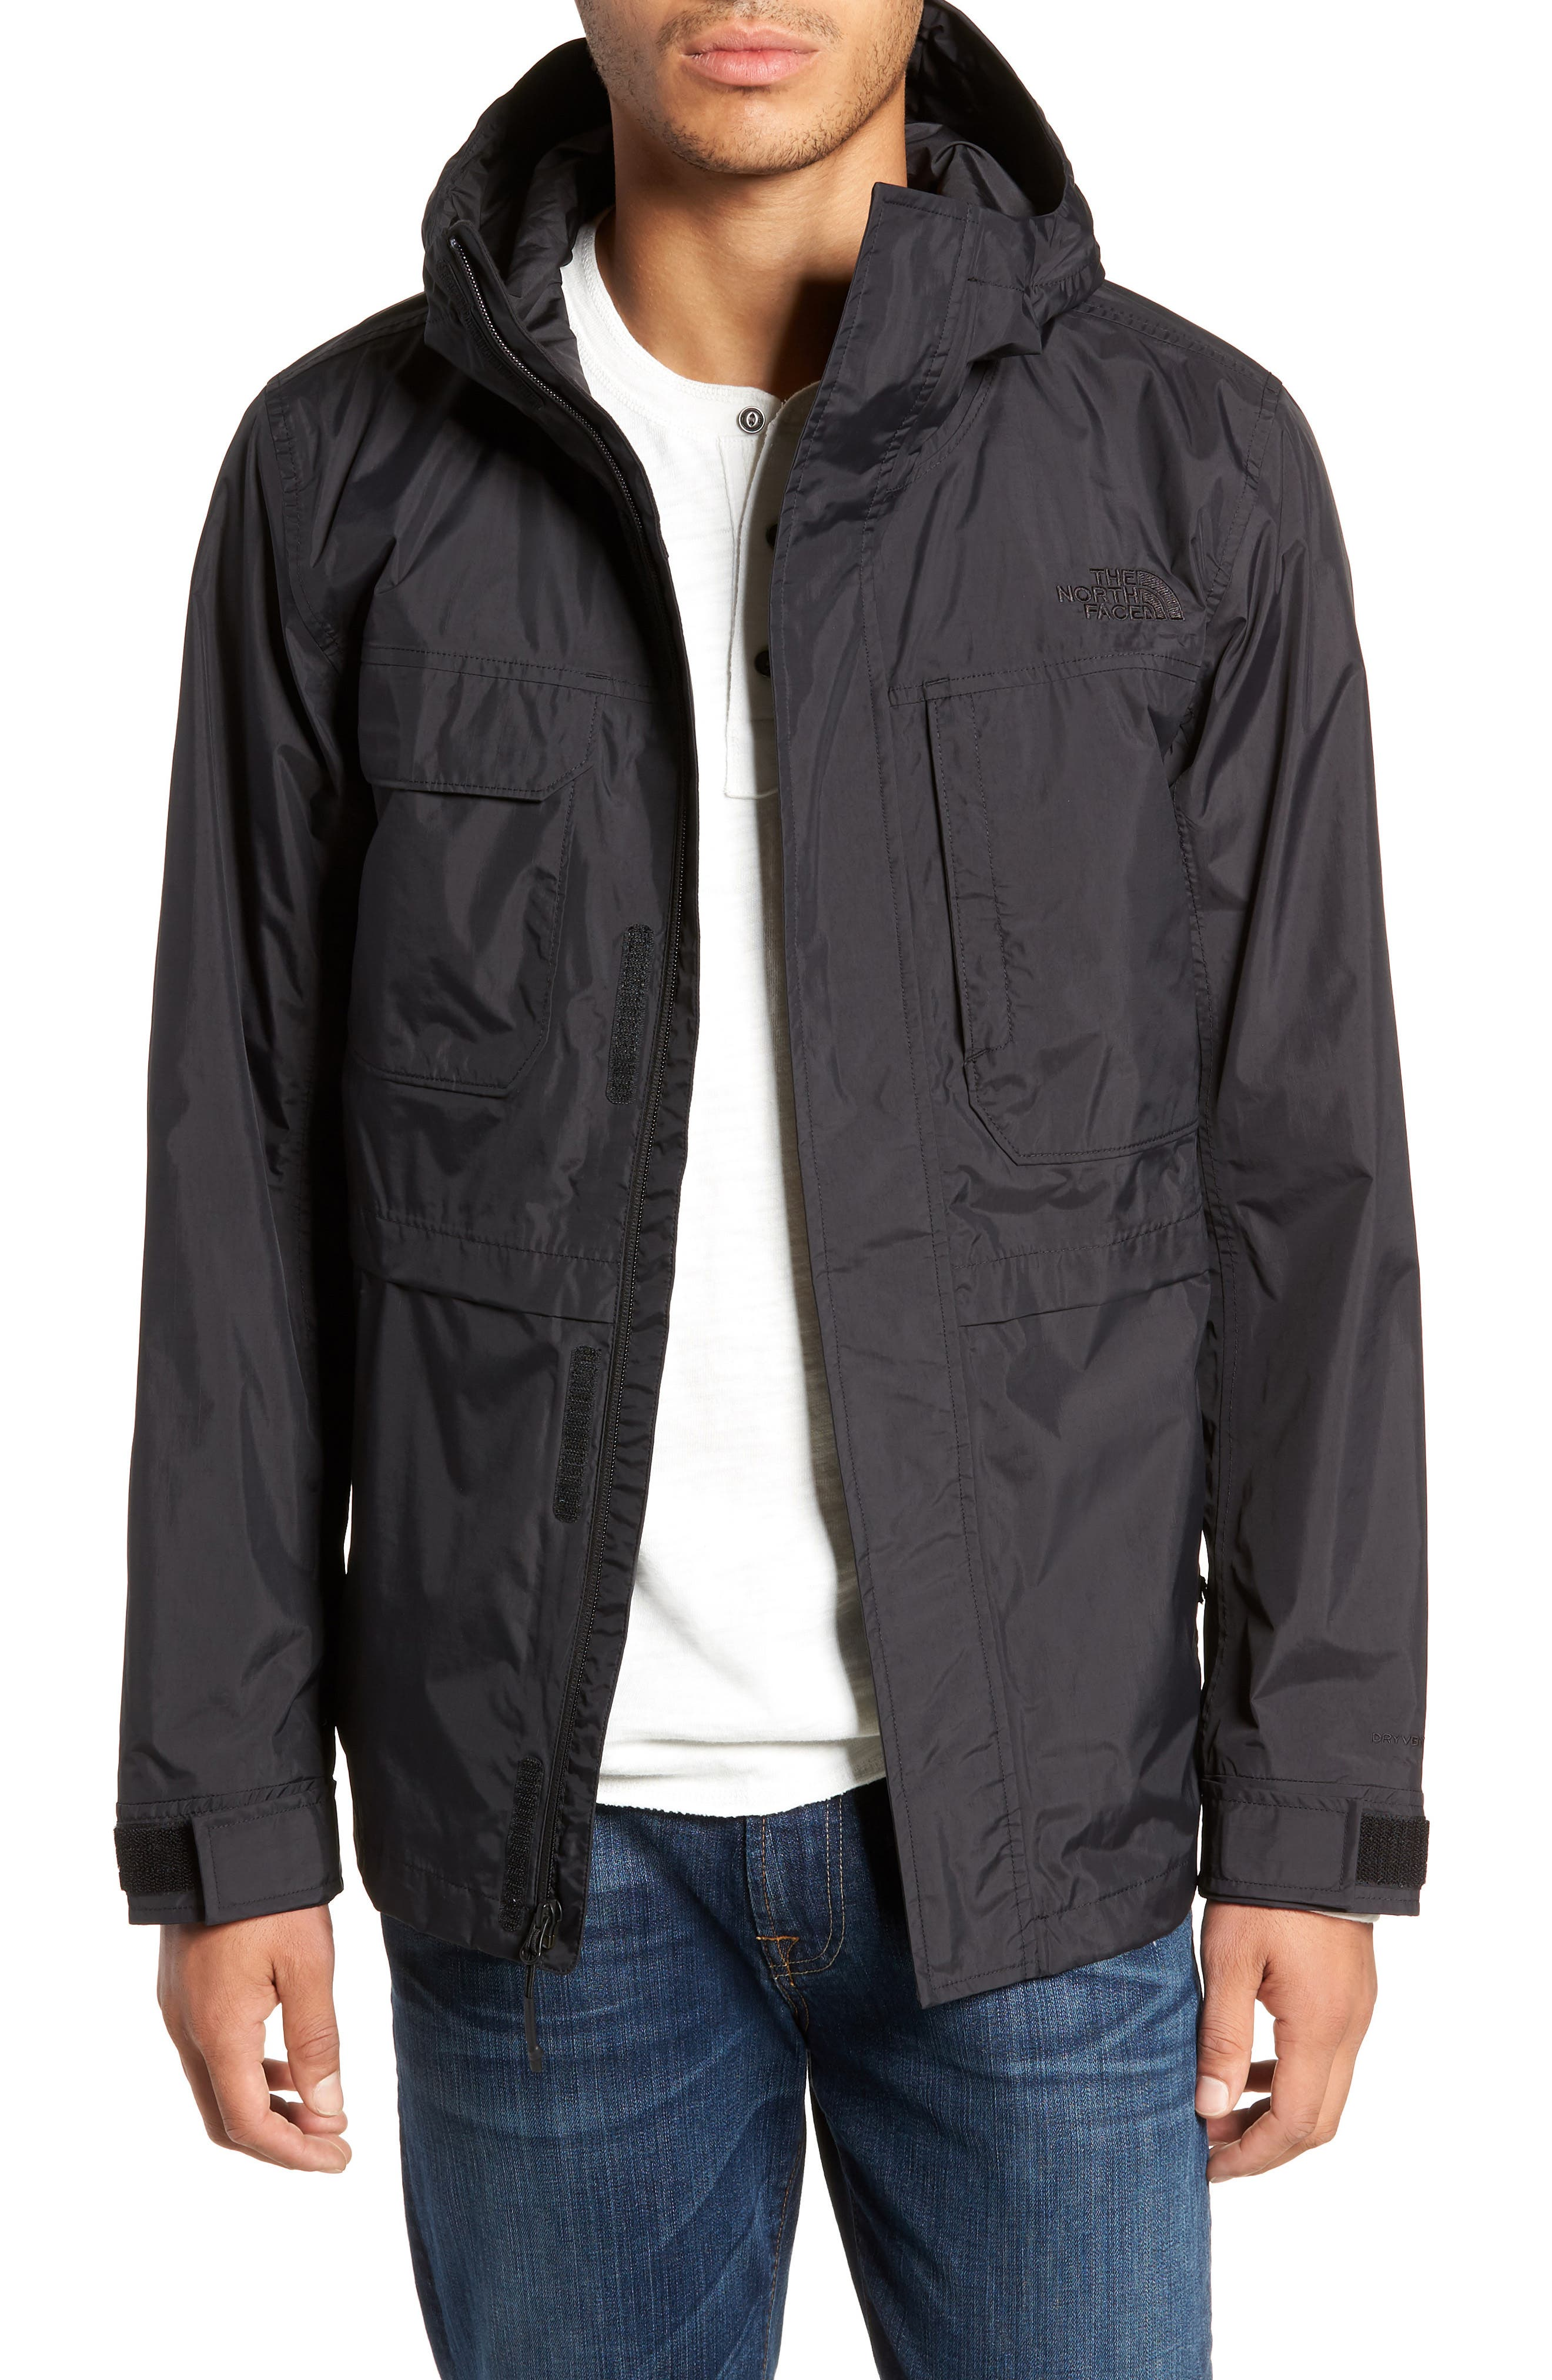 THE NORTH FACE Zoomie Rain Jacket, Main, color, 001